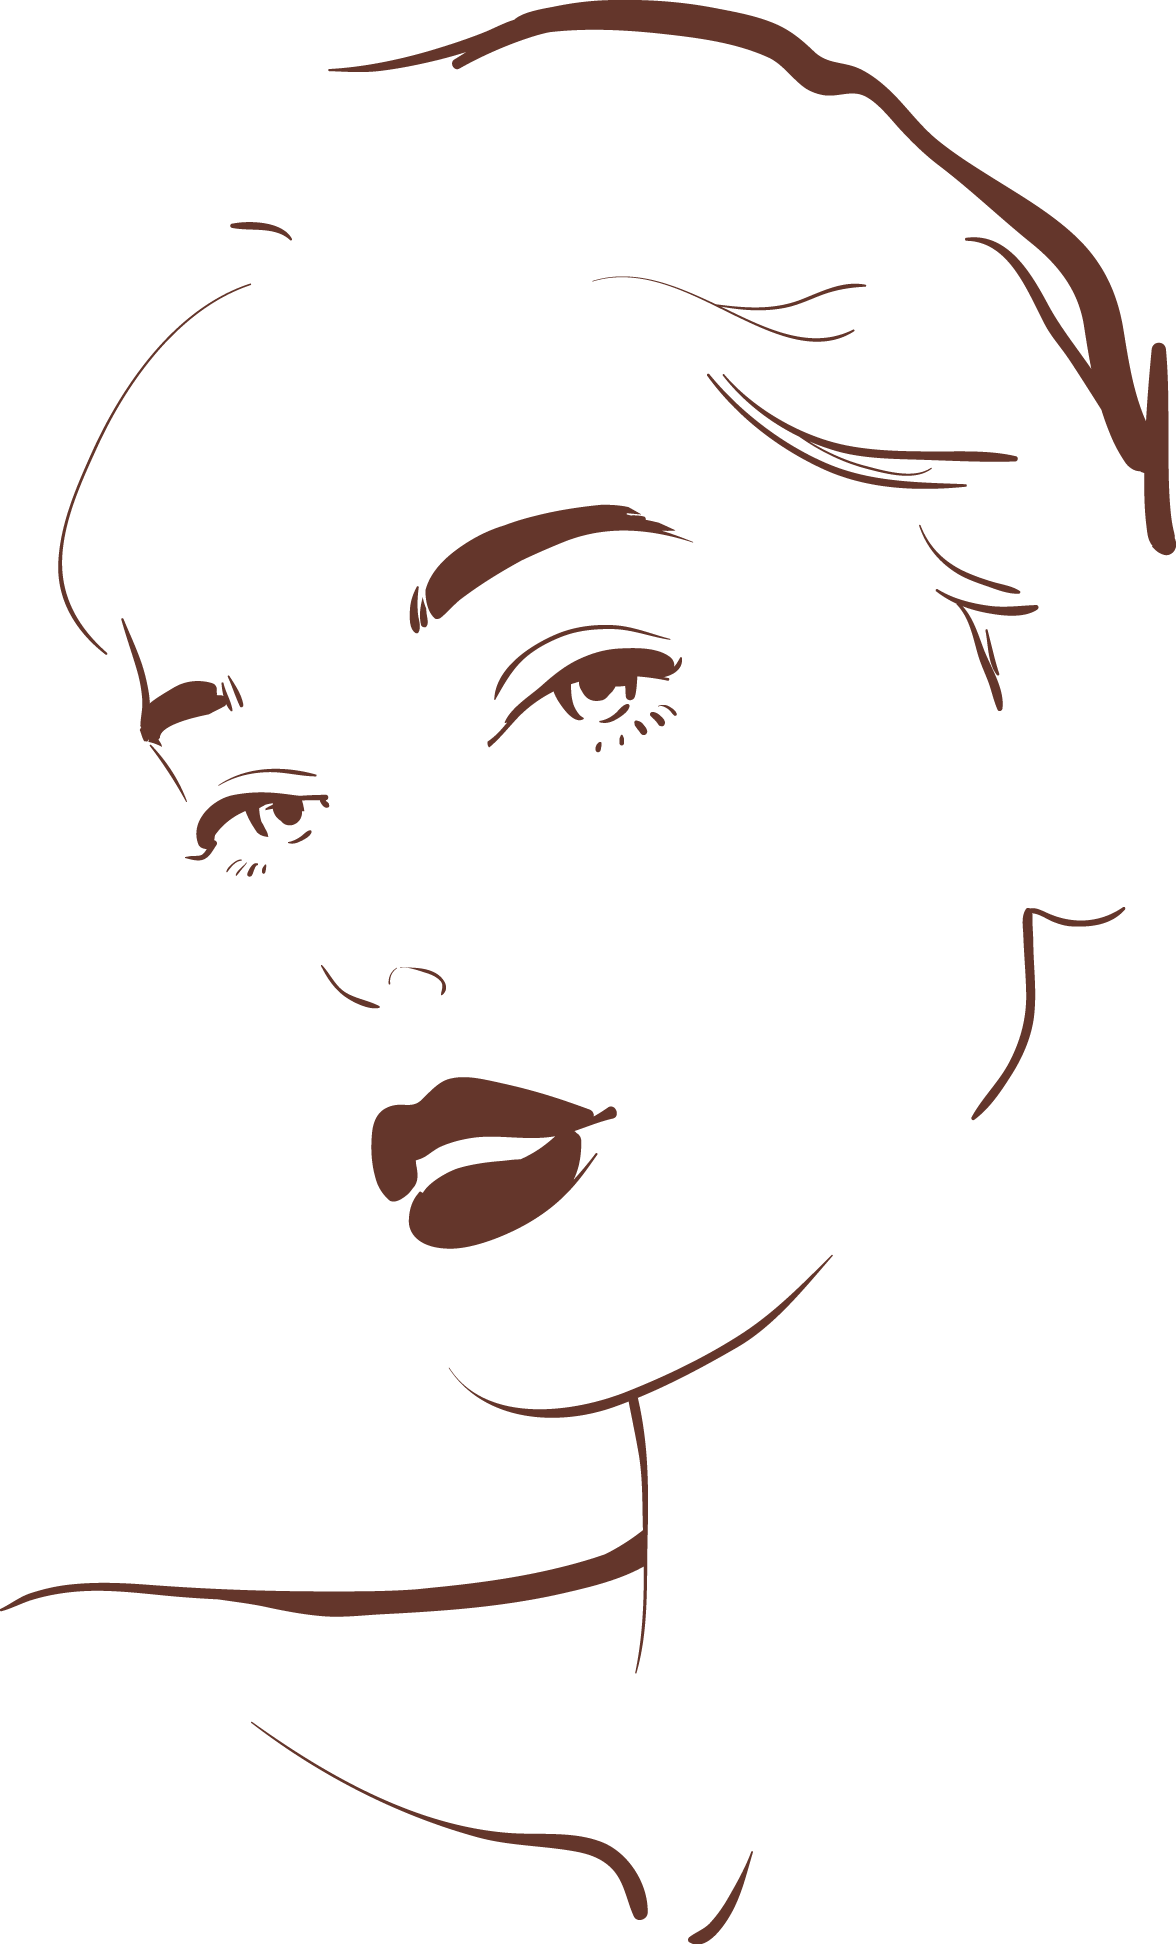 Drawing Woman Face Illustration.